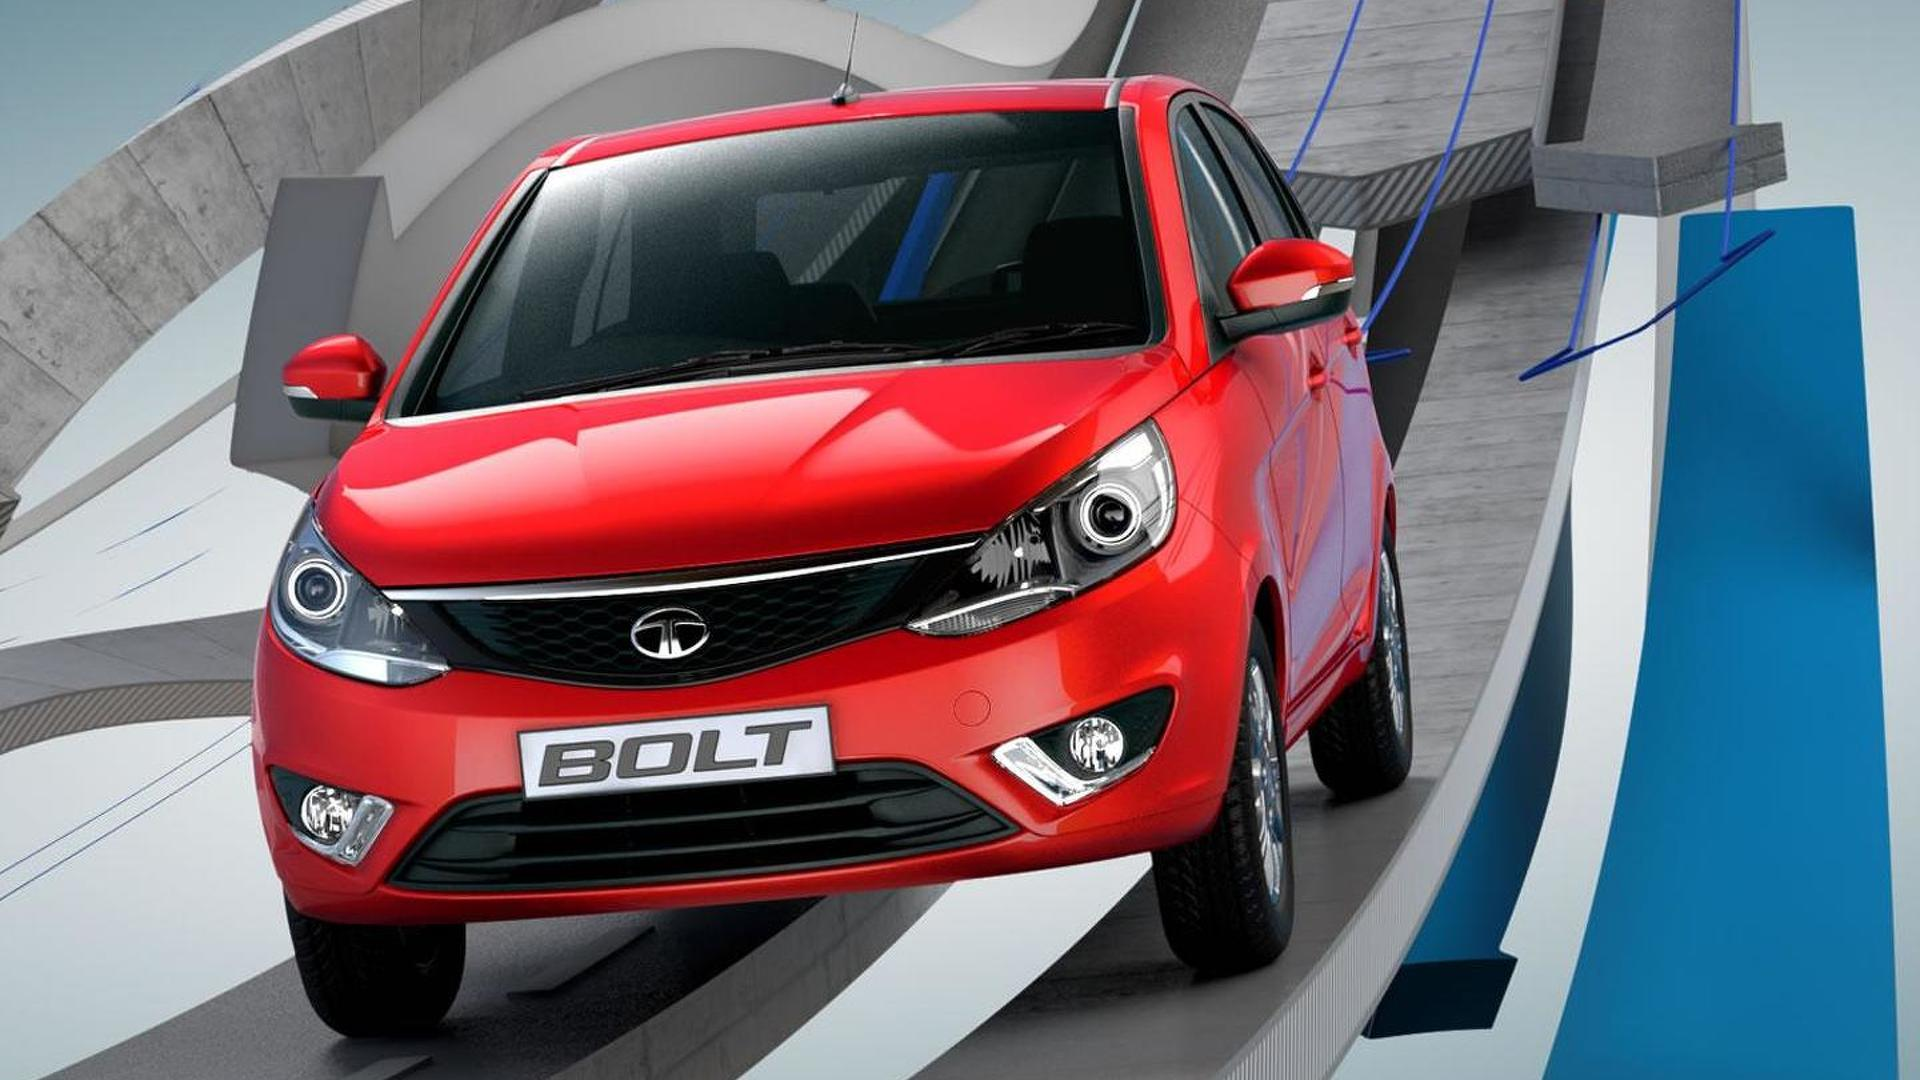 Tata introduces ZEST compact sedan and BOLT hatchback in New Delhi [videos]